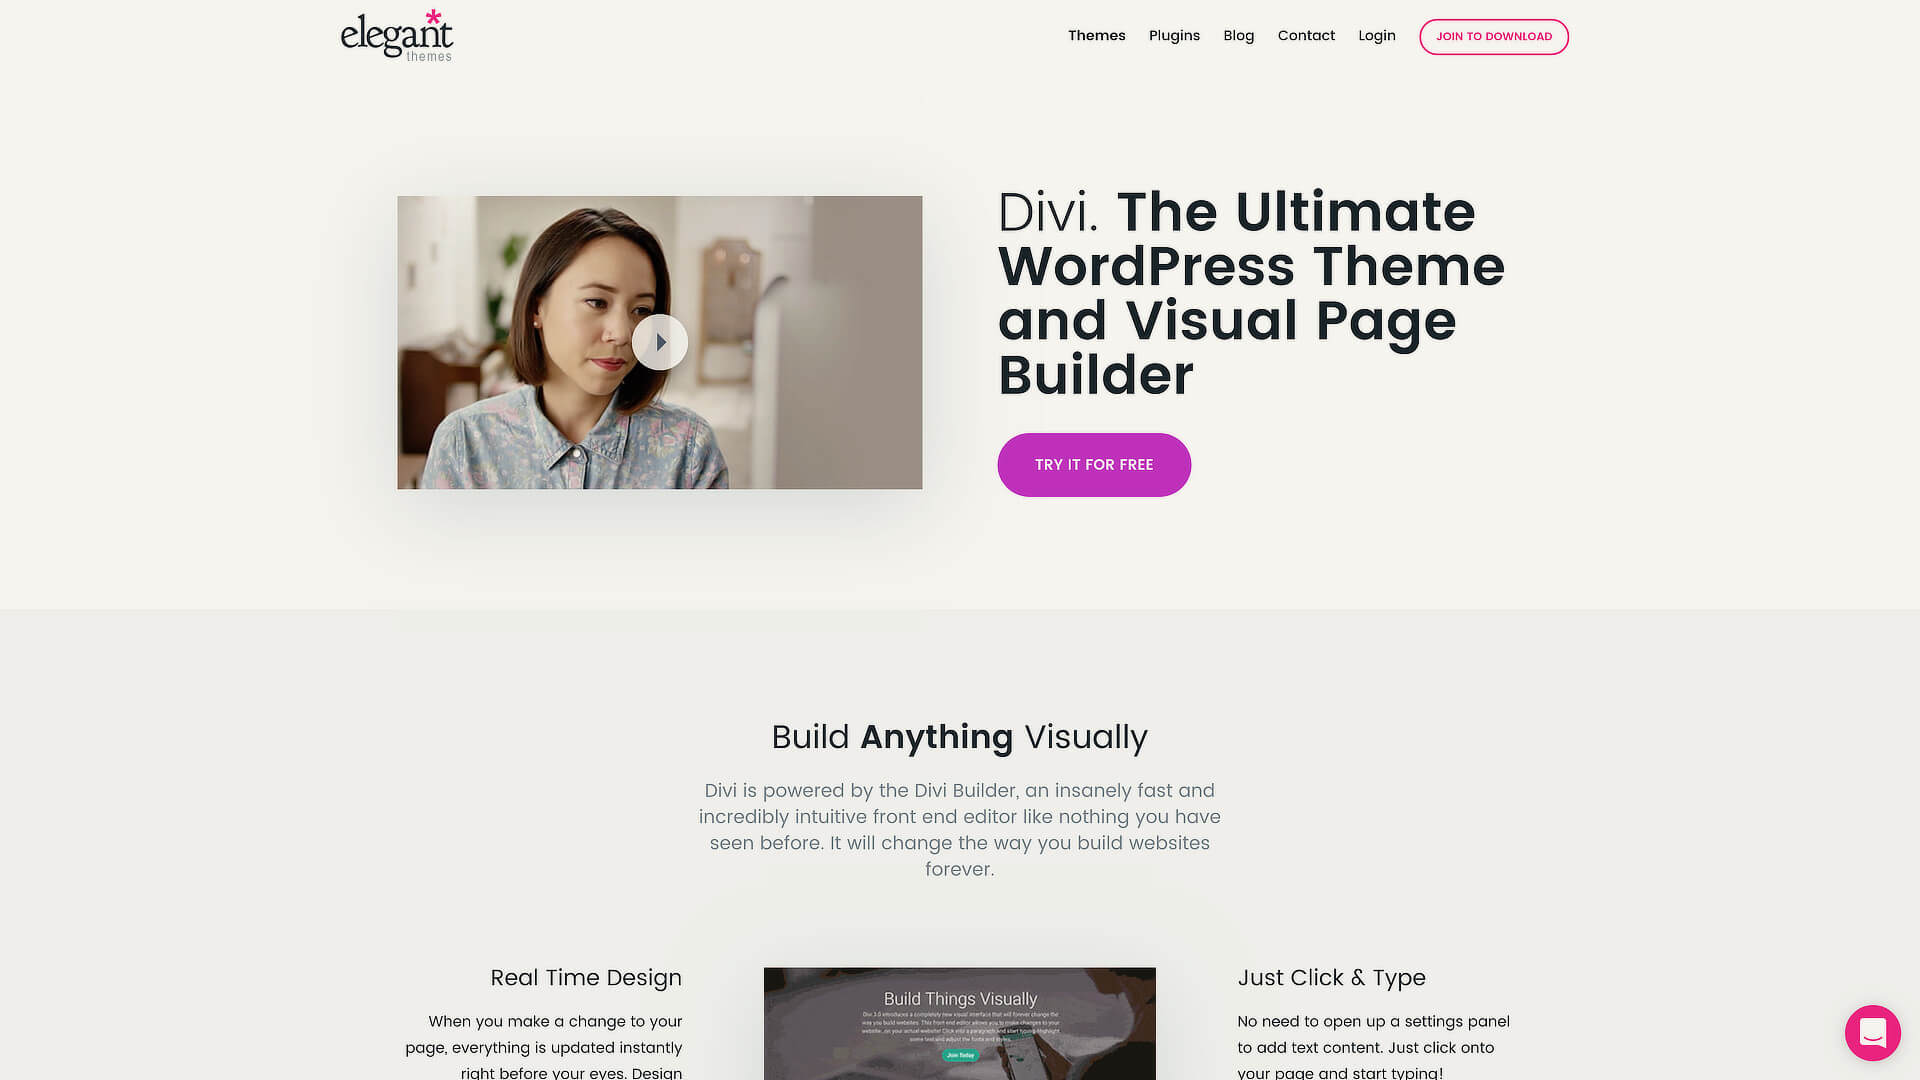 Do you still need a website? Build it with Divi